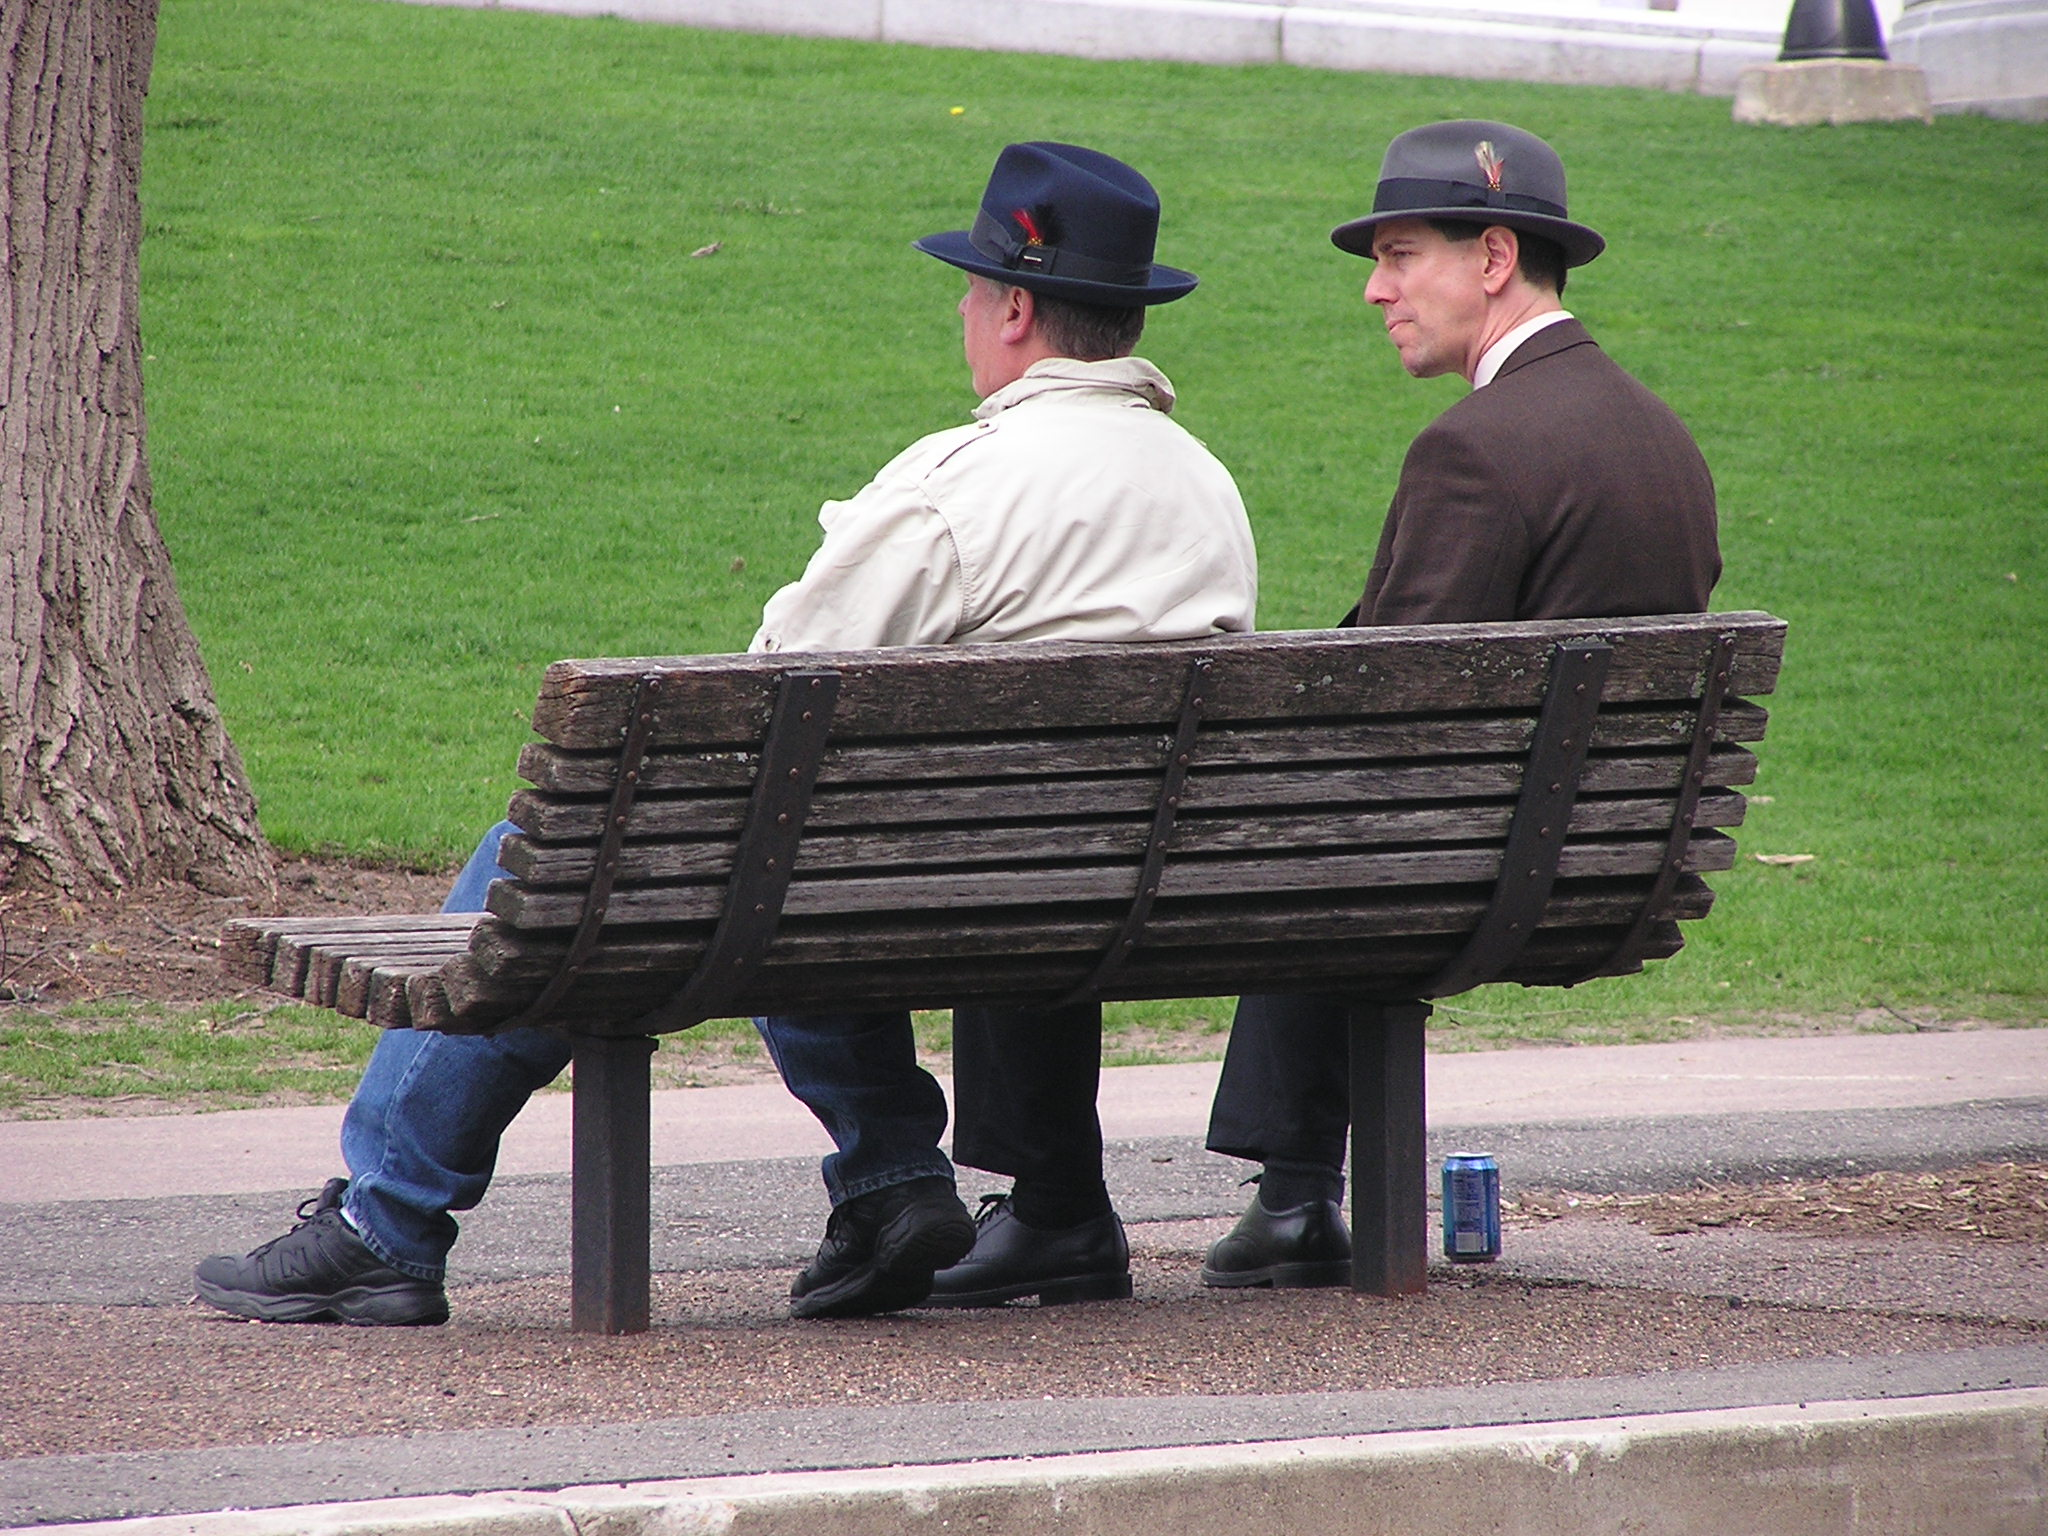 People Sitting On A Bench Images Galleries With A Bite